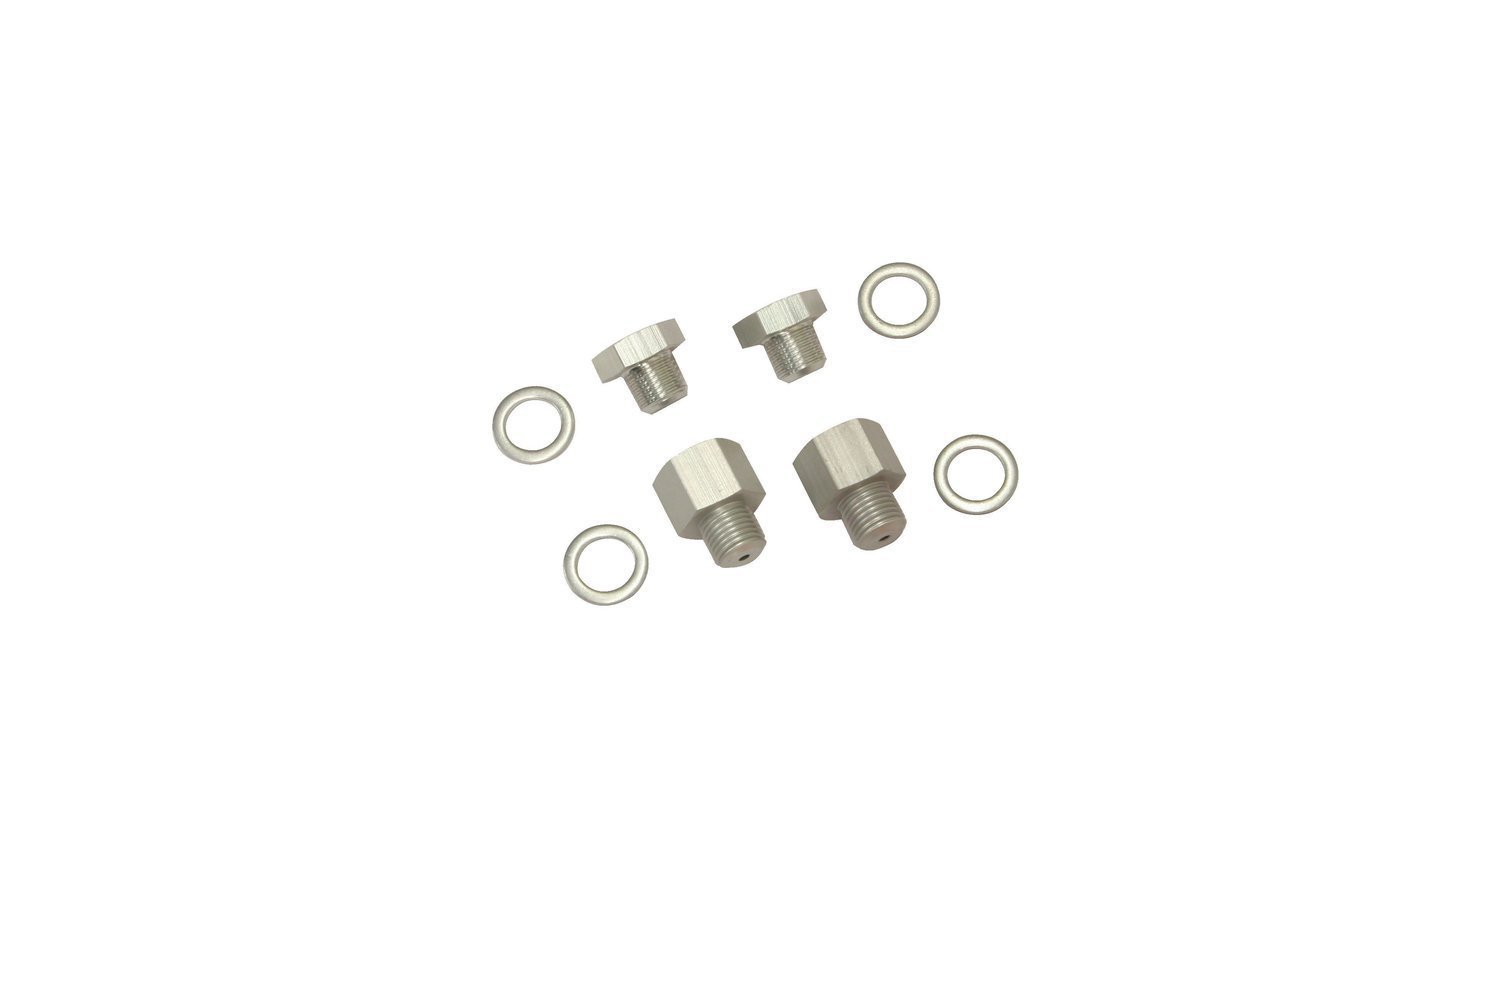 4. Wilwood's master cylinder features dual outlets and comes complete with plugs and adapters, saving a trip to the auto parts store.